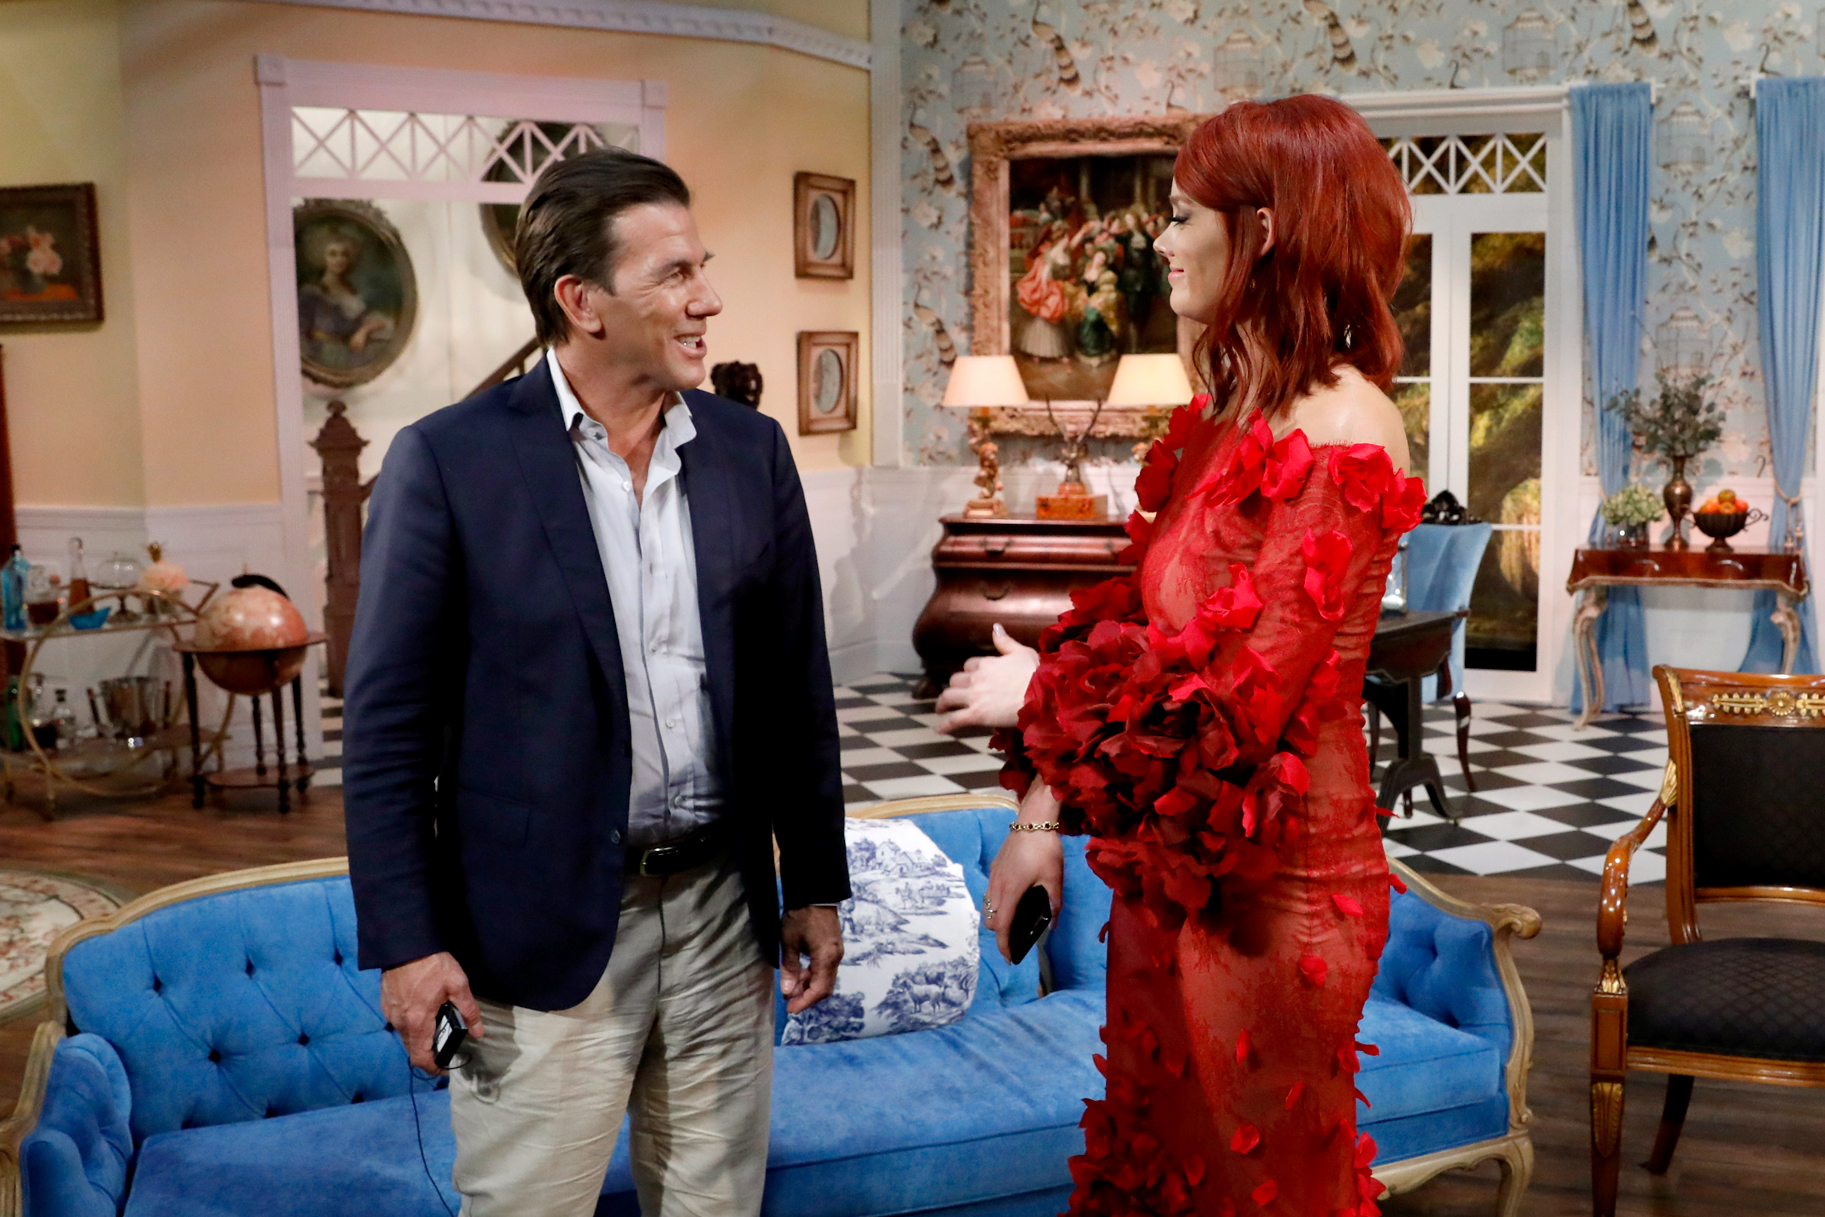 8 Things You Didn't See at the Southern Charm Season 4